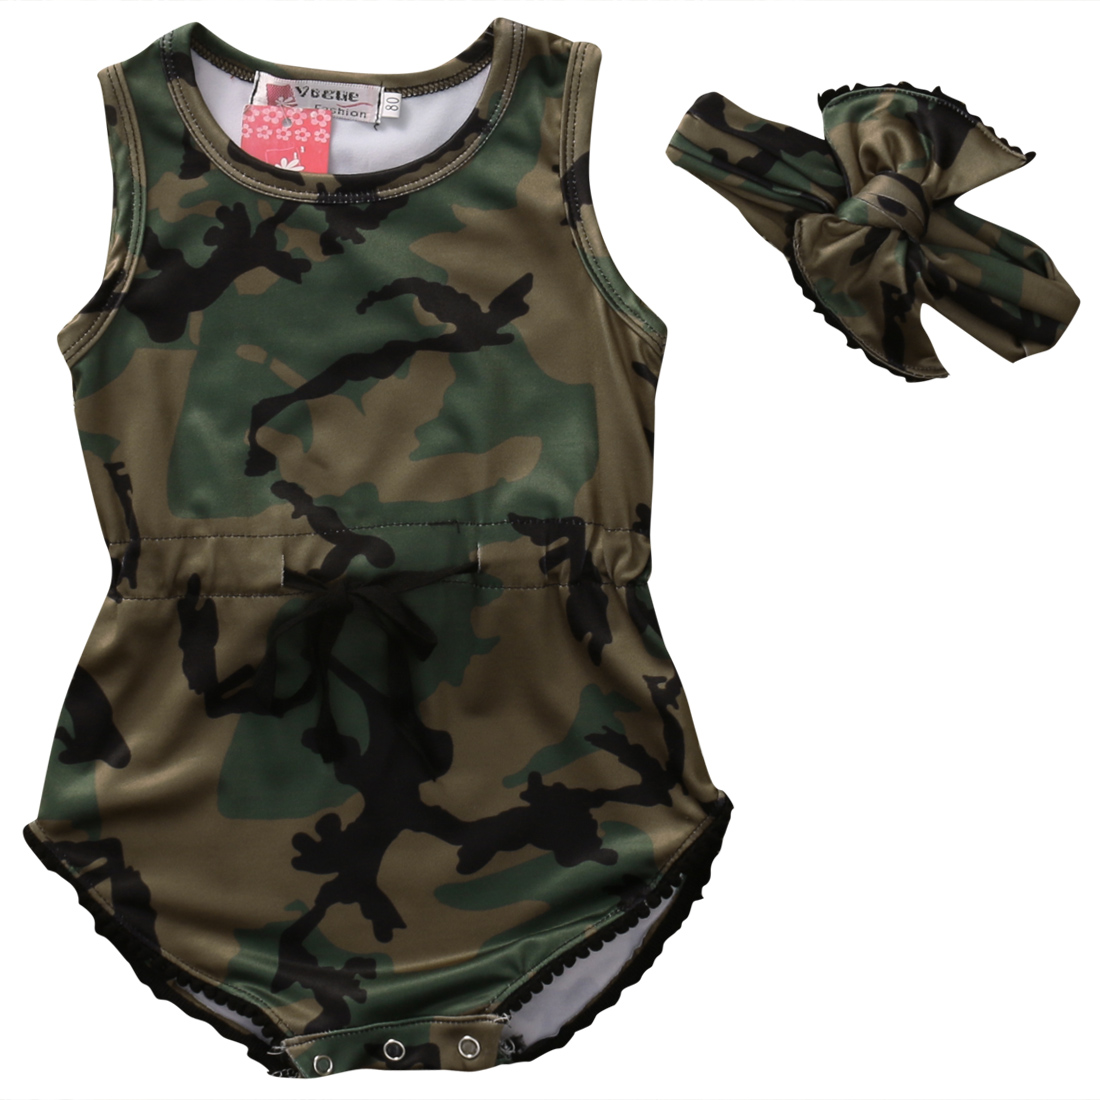 2PCS Newborn Baby Boy Girl Clothes 2017 Summer Sleeveless Camouflage Romper Baby Bodysuit +Headband 2PCS Outfits Kid Bebek Giyim 2017 newborn baby boy girl clothes floral infant bebes romper bodysuit and bloomers bottom 2pcs outfit bebek giyim clothing